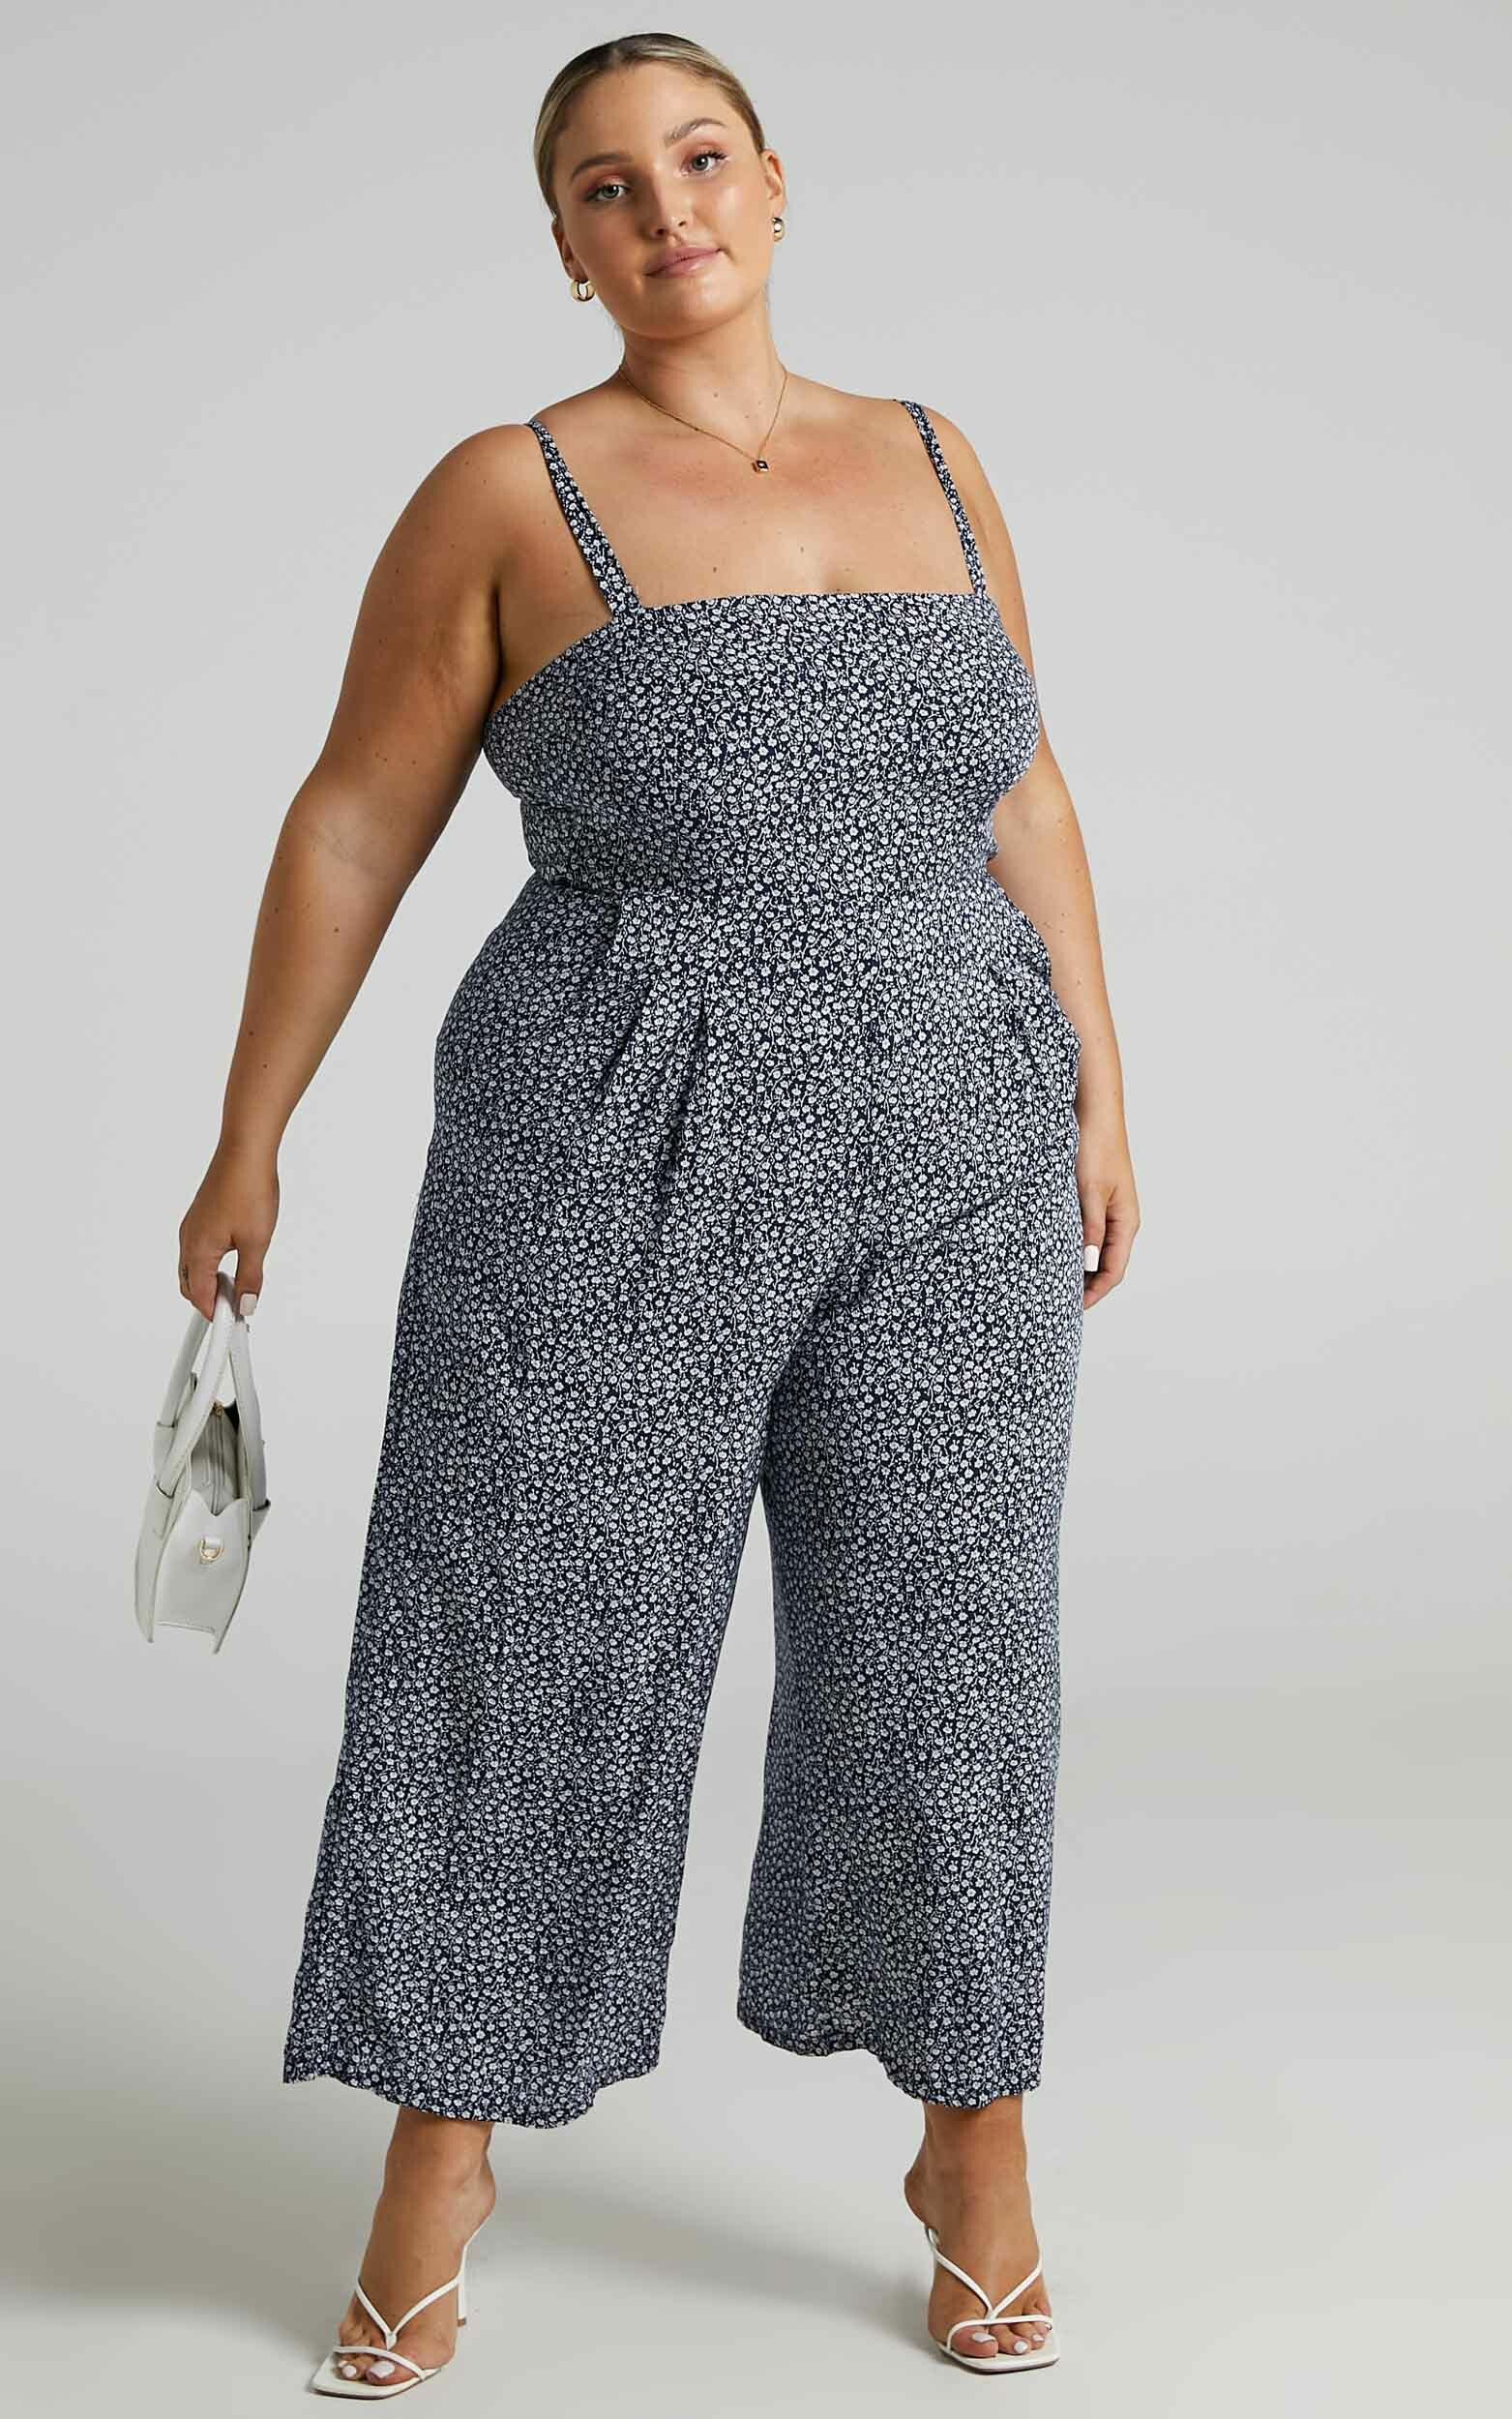 Life On The Road Jumpsuit in Navy Floral - 06, NVY3, hi-res image number null